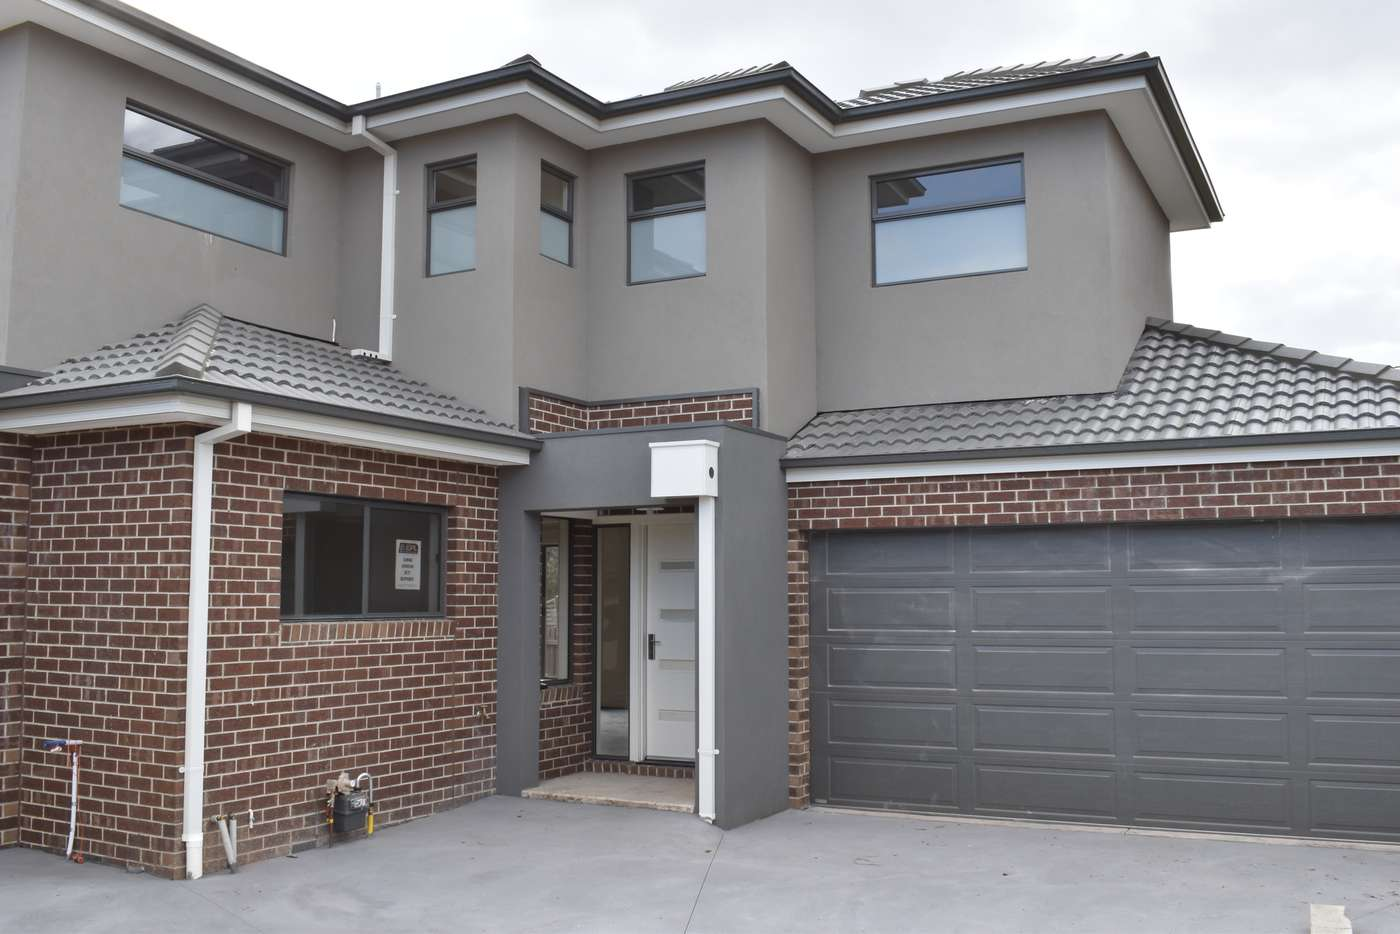 Main view of Homely townhouse listing, 2/2 St Leger Place, Epping VIC 3076